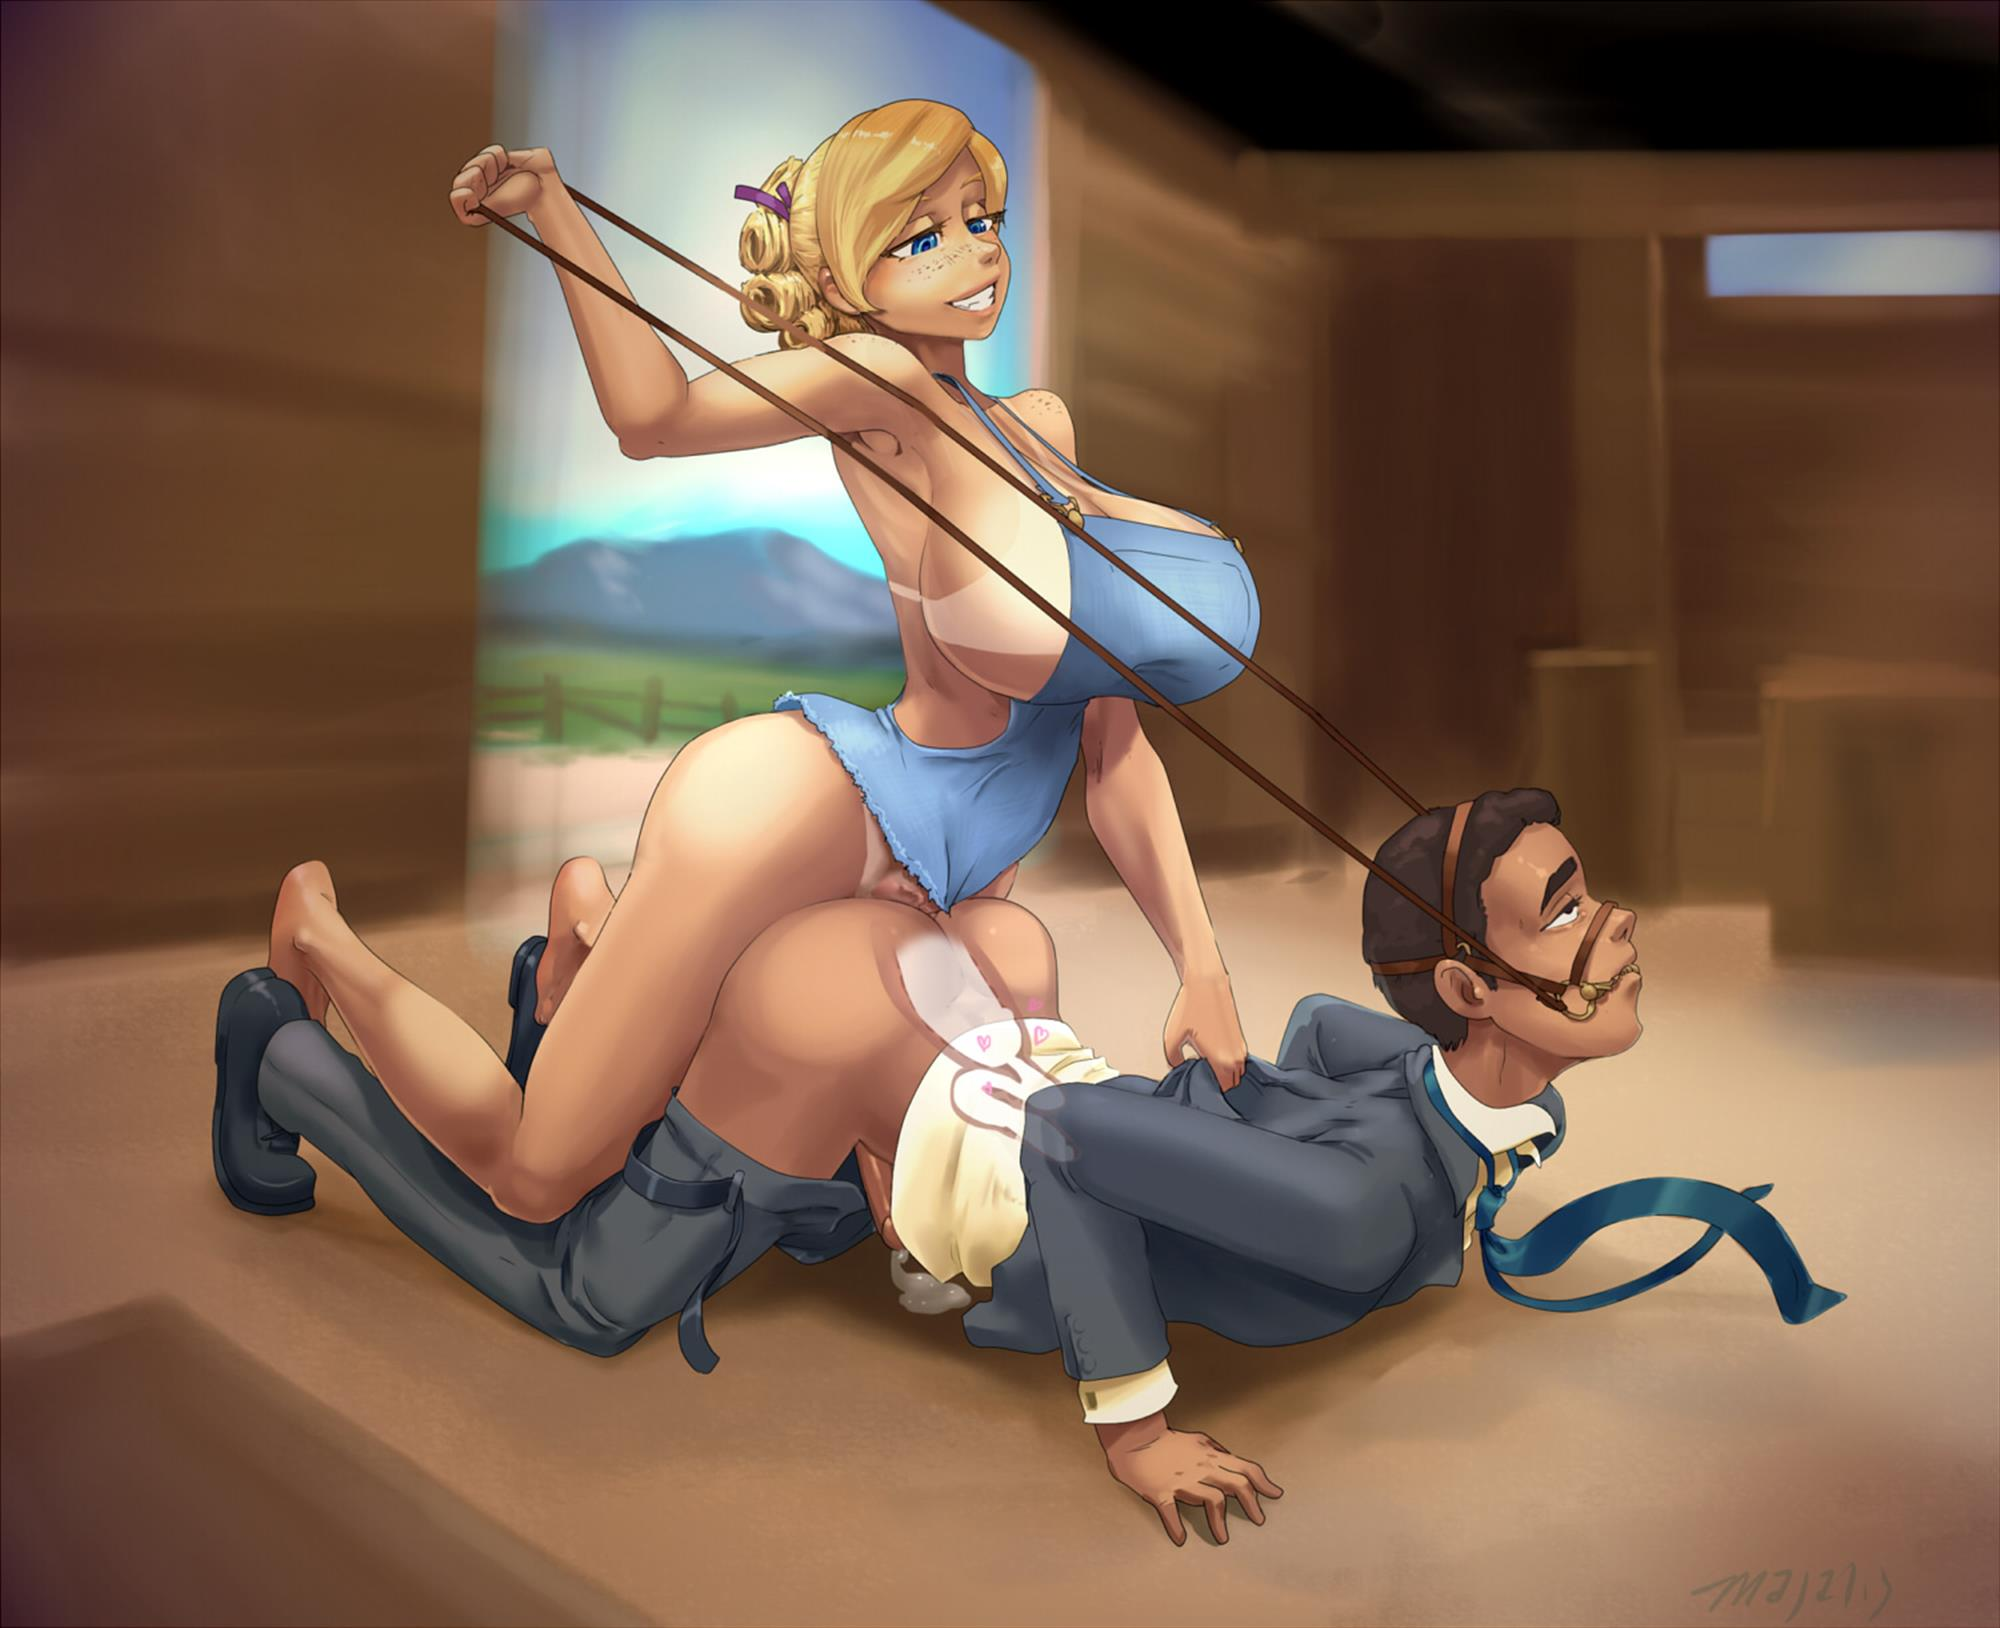 futa on male | Futapo!